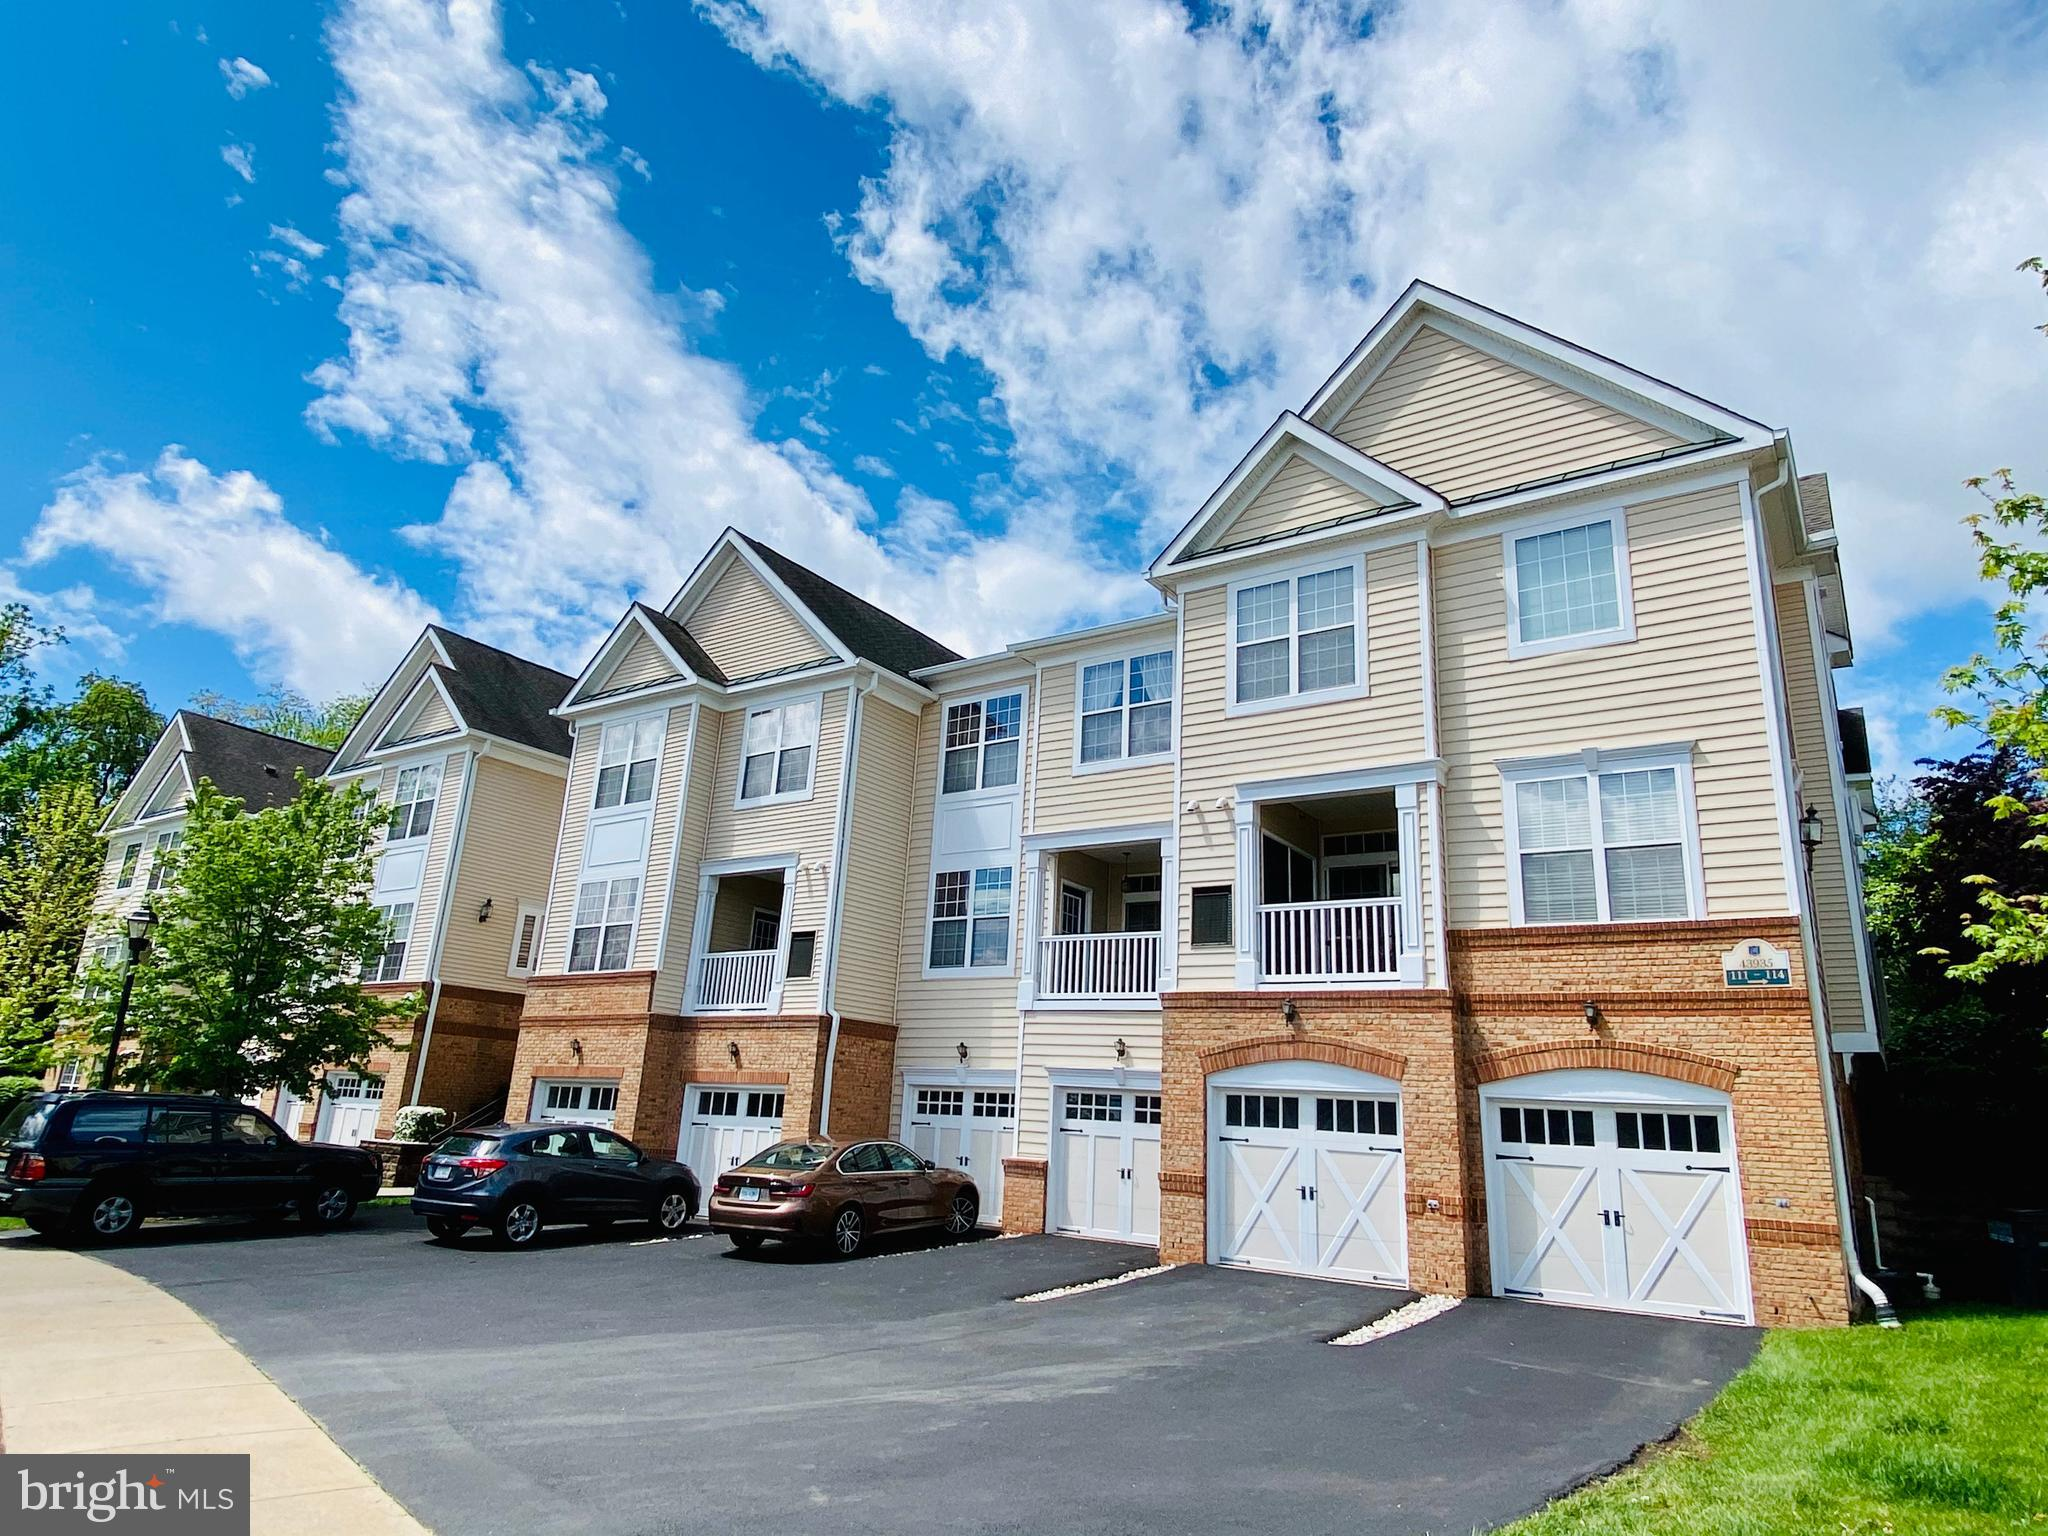 WELL MAINTAINED 3 LEVEL 2 BEDROOM 2.5 BATH CONDO IN BELMONT COUNTRY CLUB!  THIS IS A MAIN LEVEL UNIT